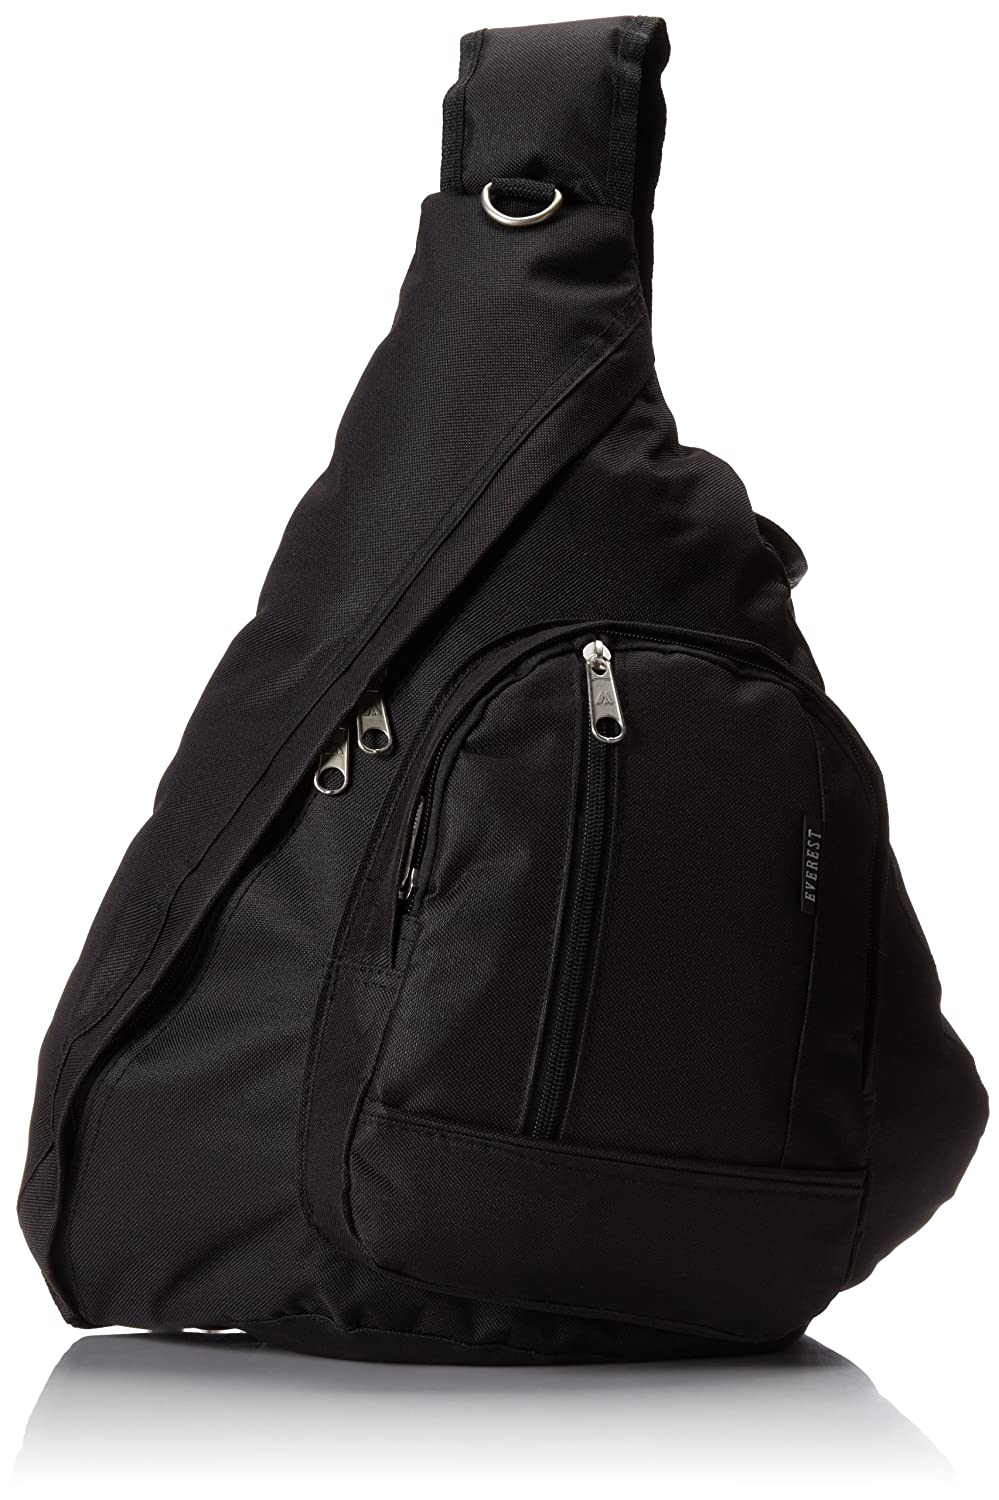 Everest Sling Bag, Black, One Size: Amazon.ca: Luggage & Bags